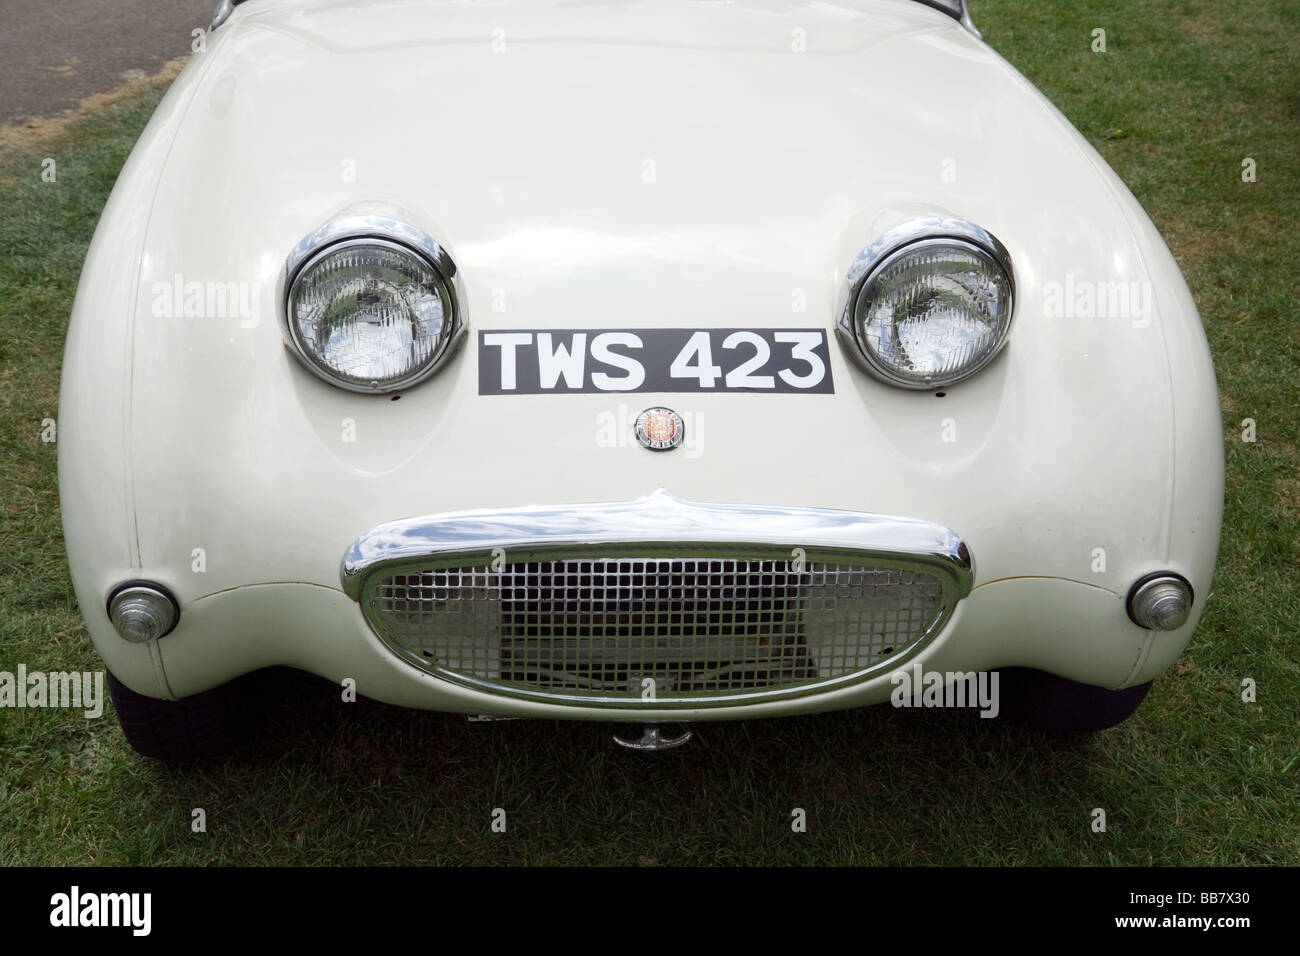 Austin Healey Sprite, also known as 'frogeye' or 'bugeye', Wallingford Classic Car rally, Oxfordshire, - Stock Image